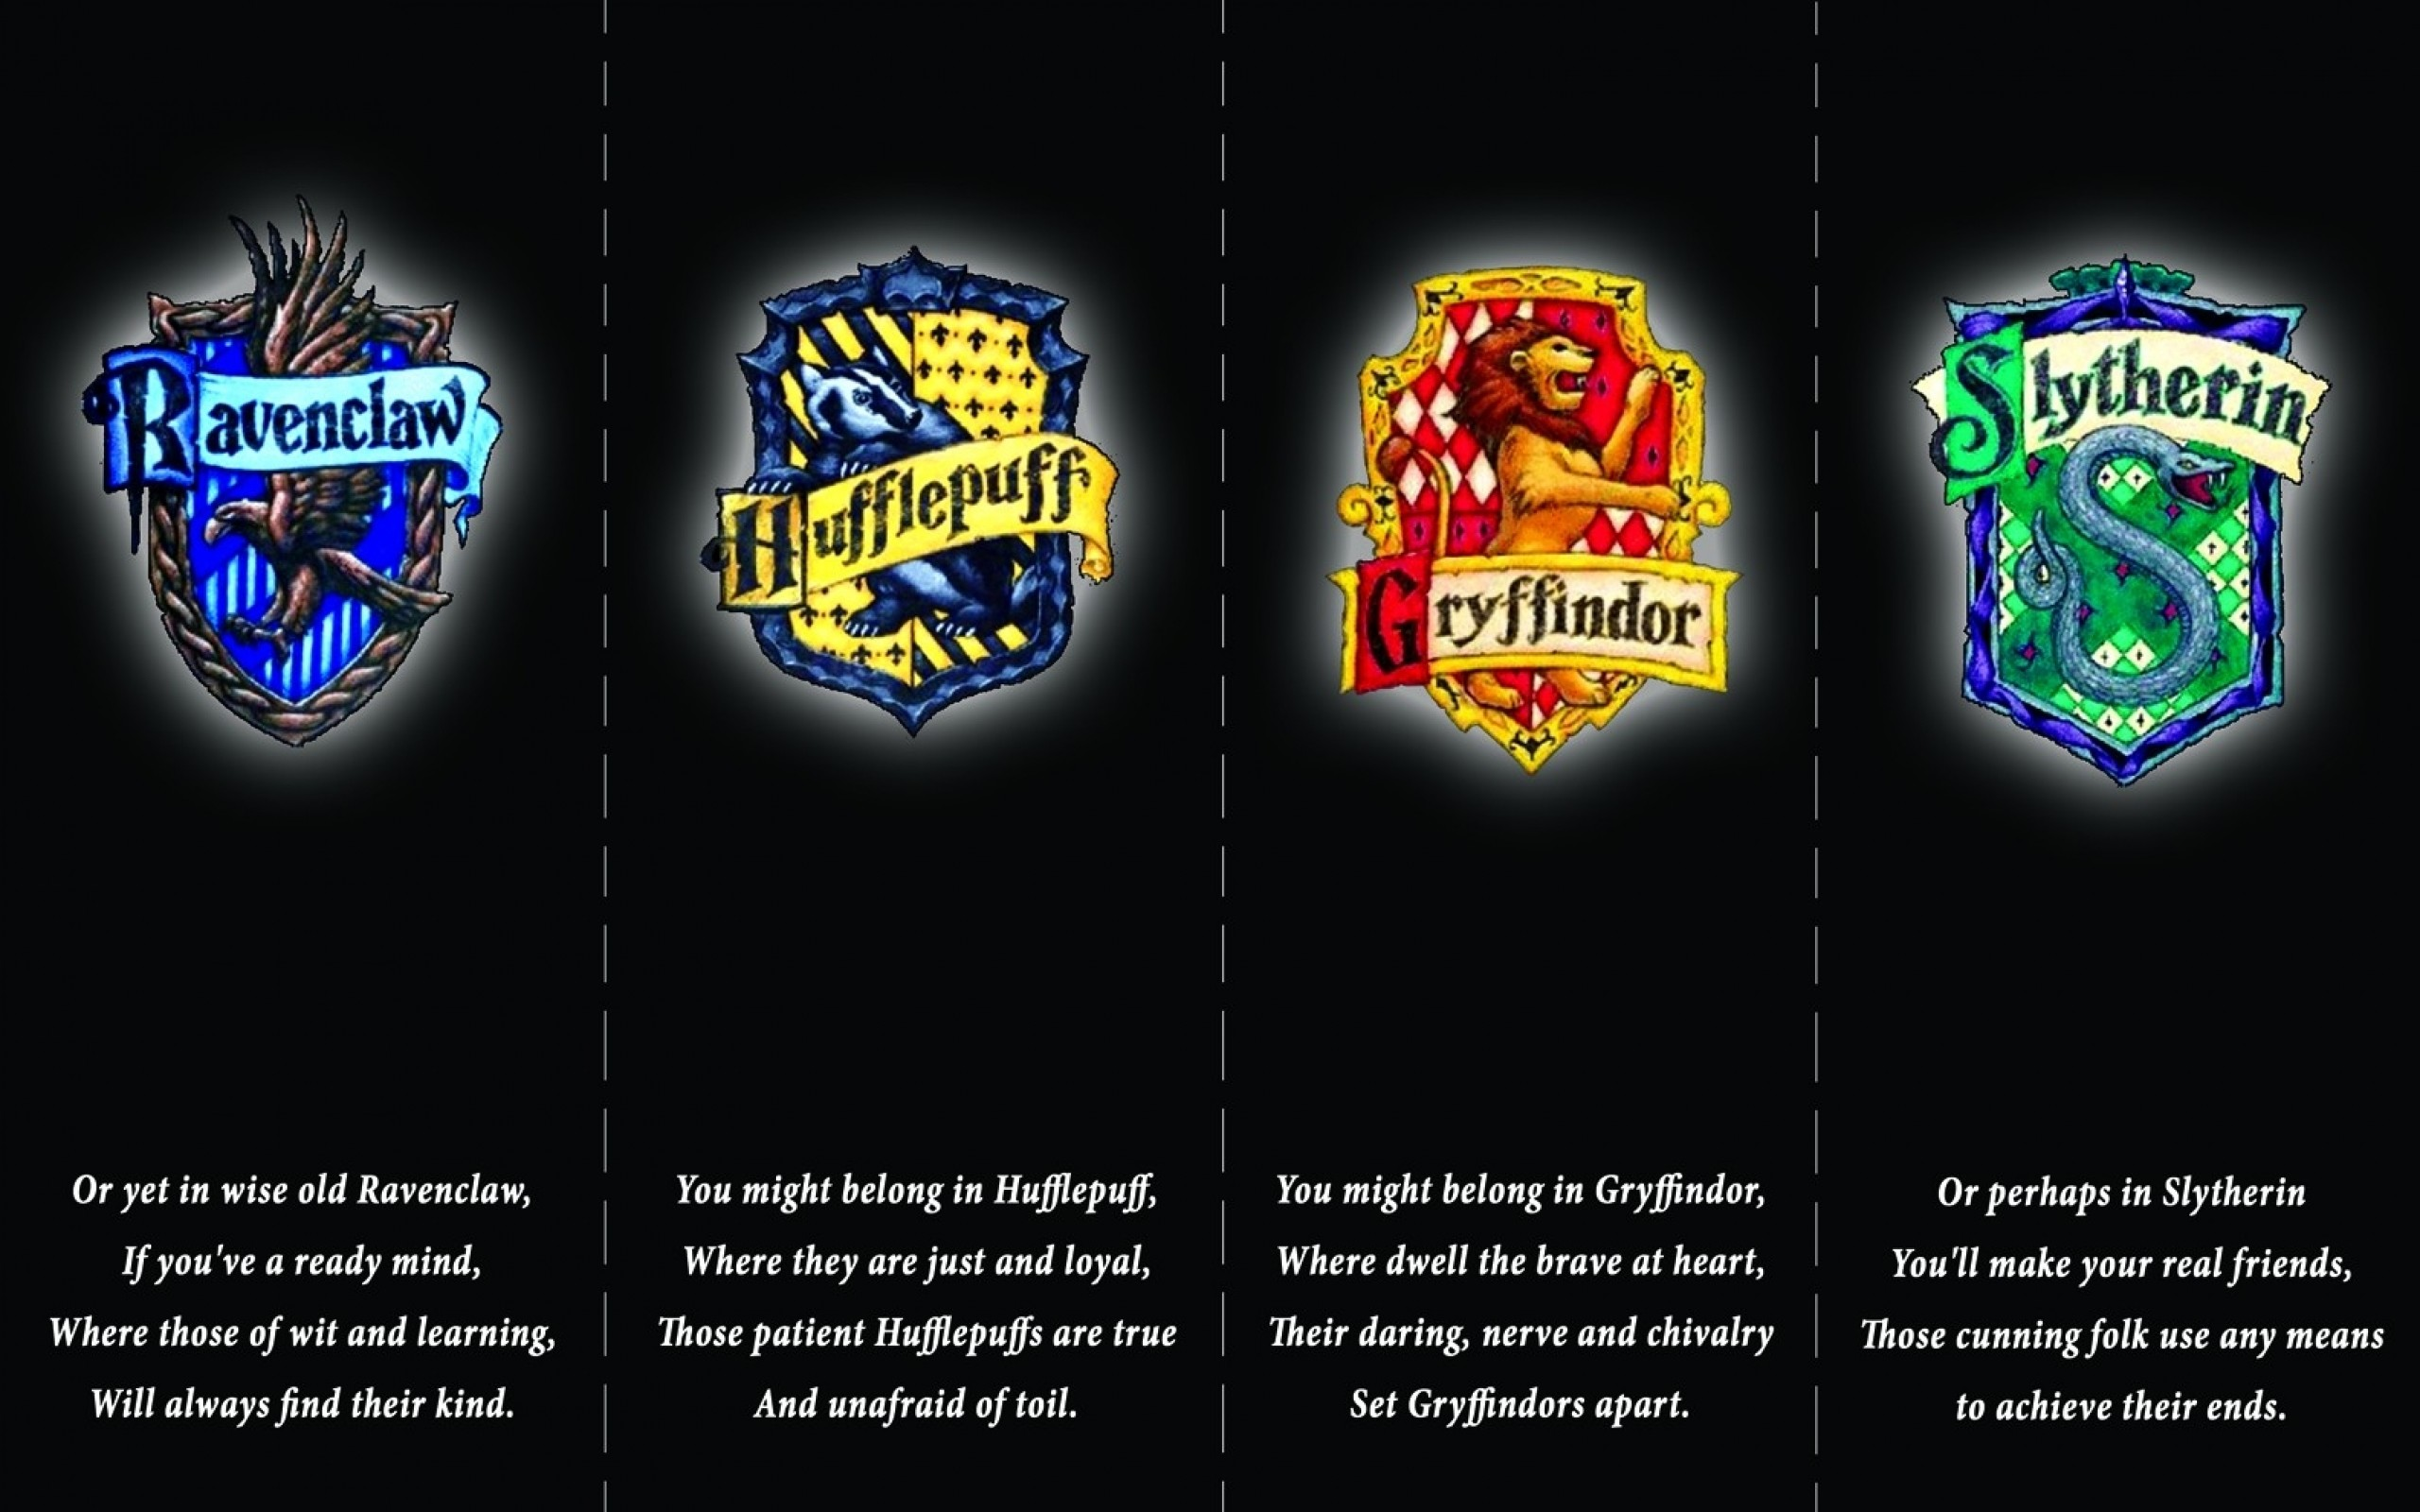 2560x1600 harry potter hufflepuff logos gryffindor hogwarts slytherin ravenclaw  1584x1049 wallpaper Art HD Wallpaper